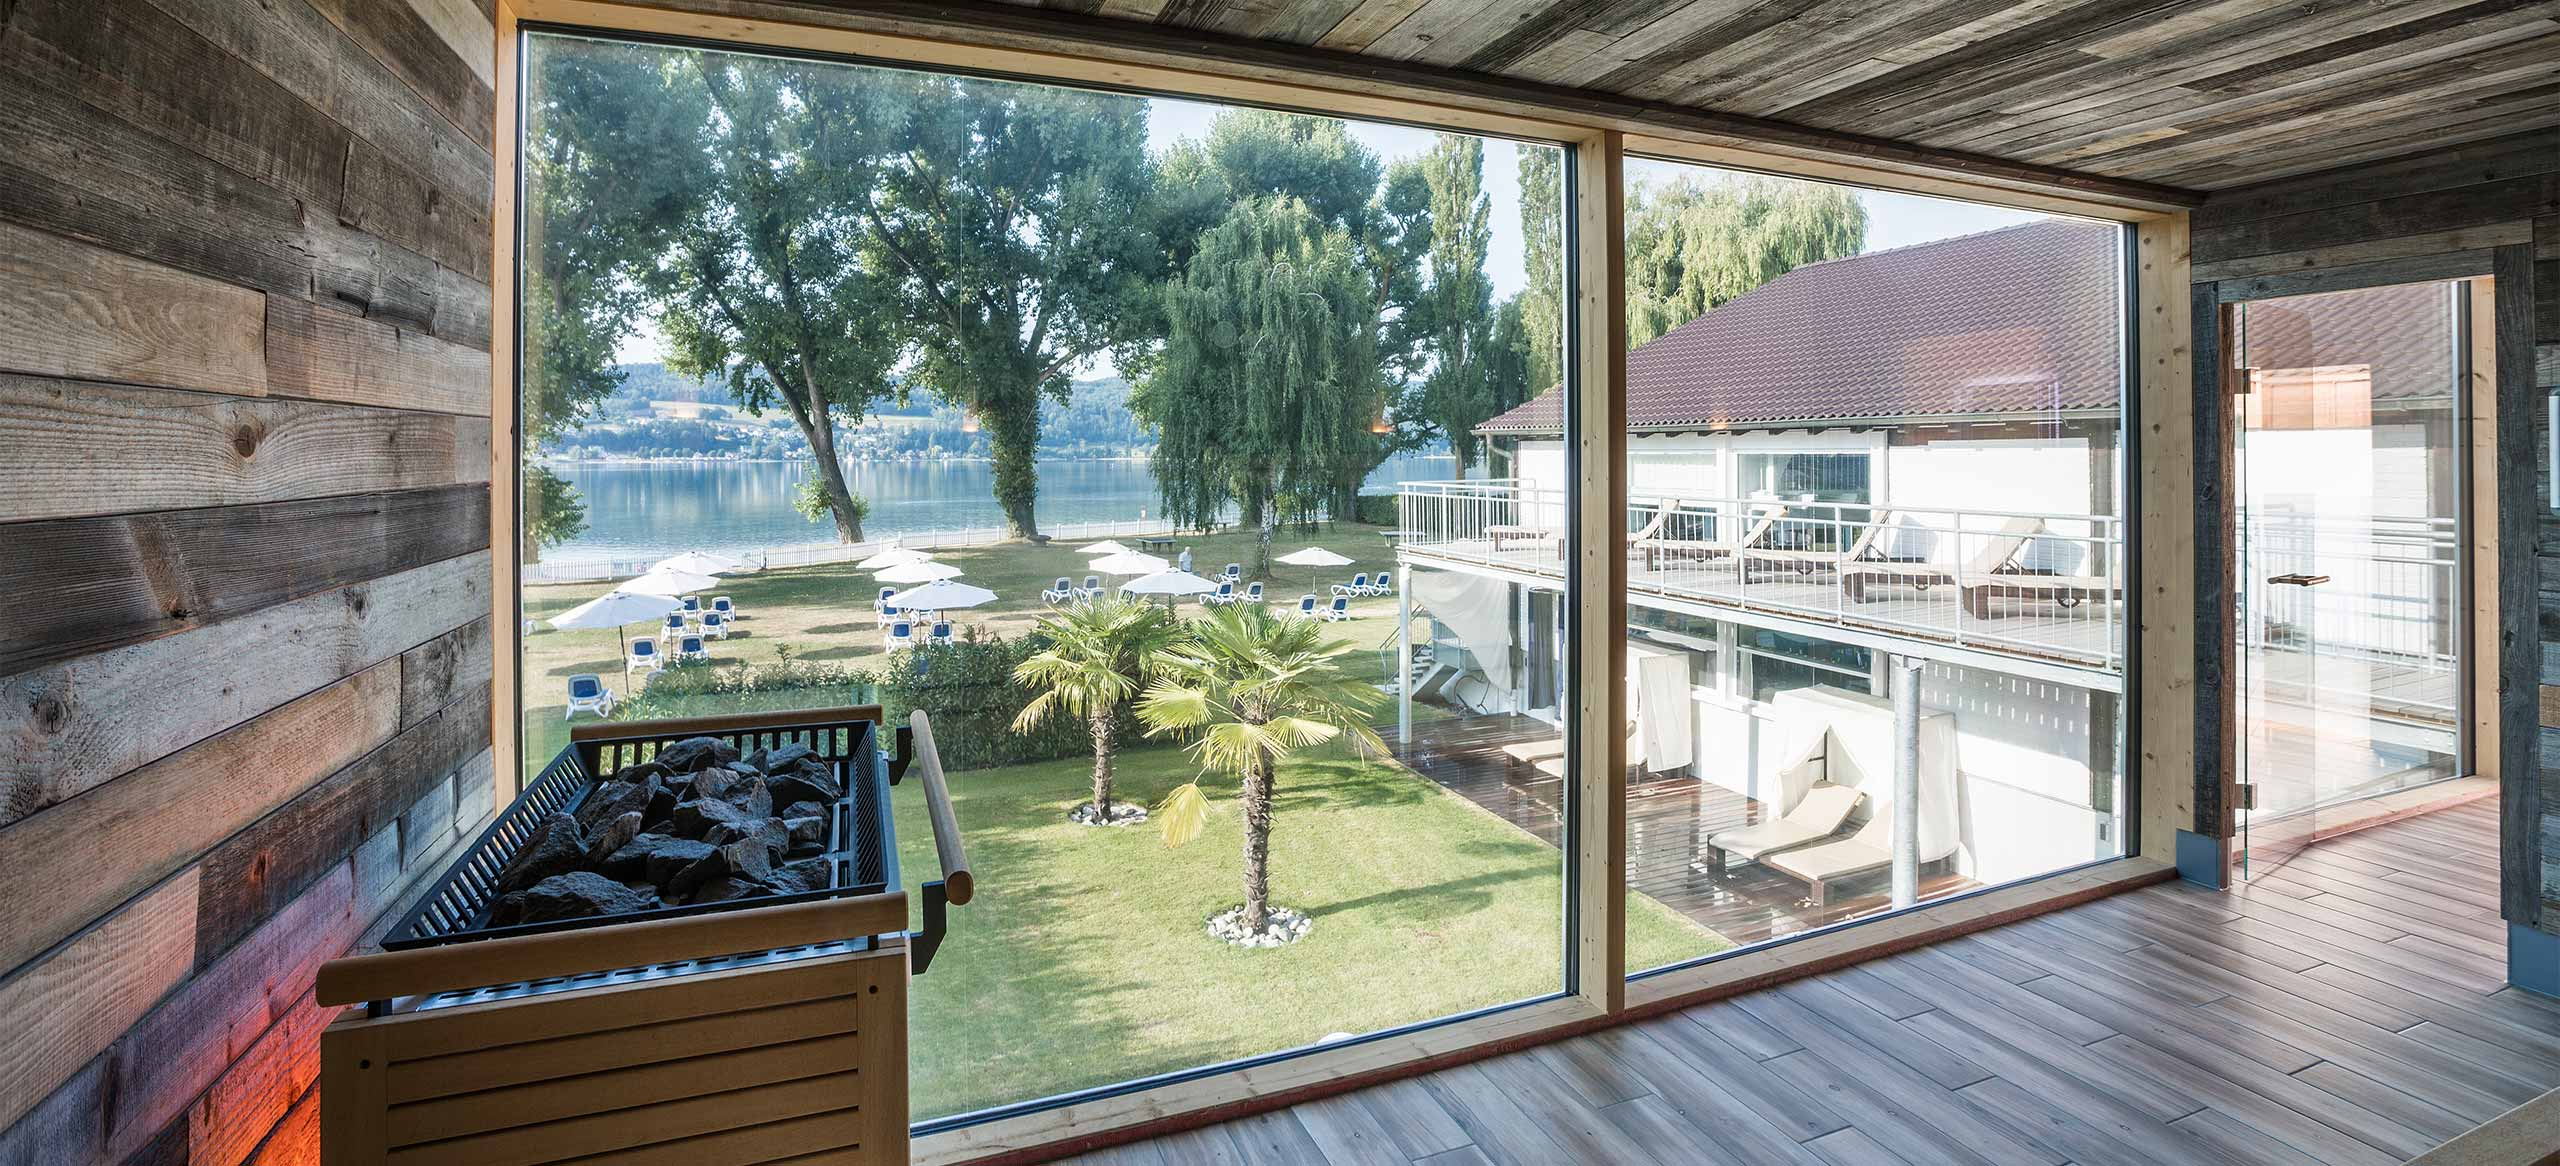 © Hotel Hoeri am Bodensee